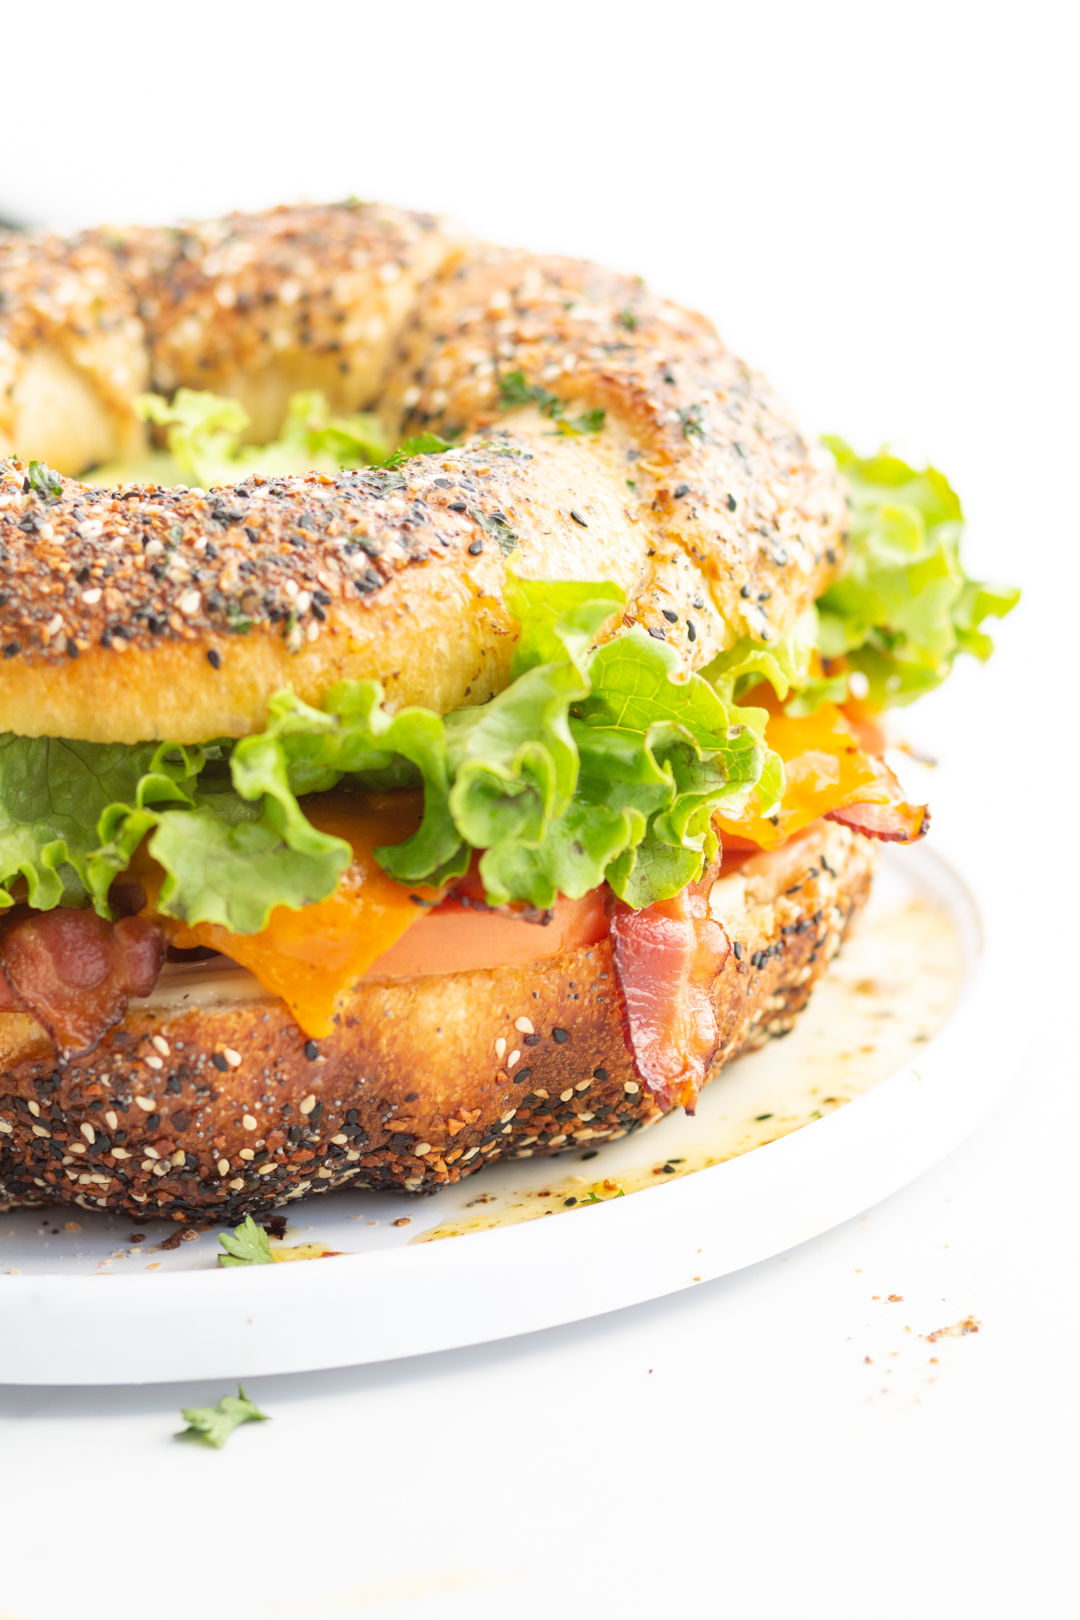 up close of large party sandwich